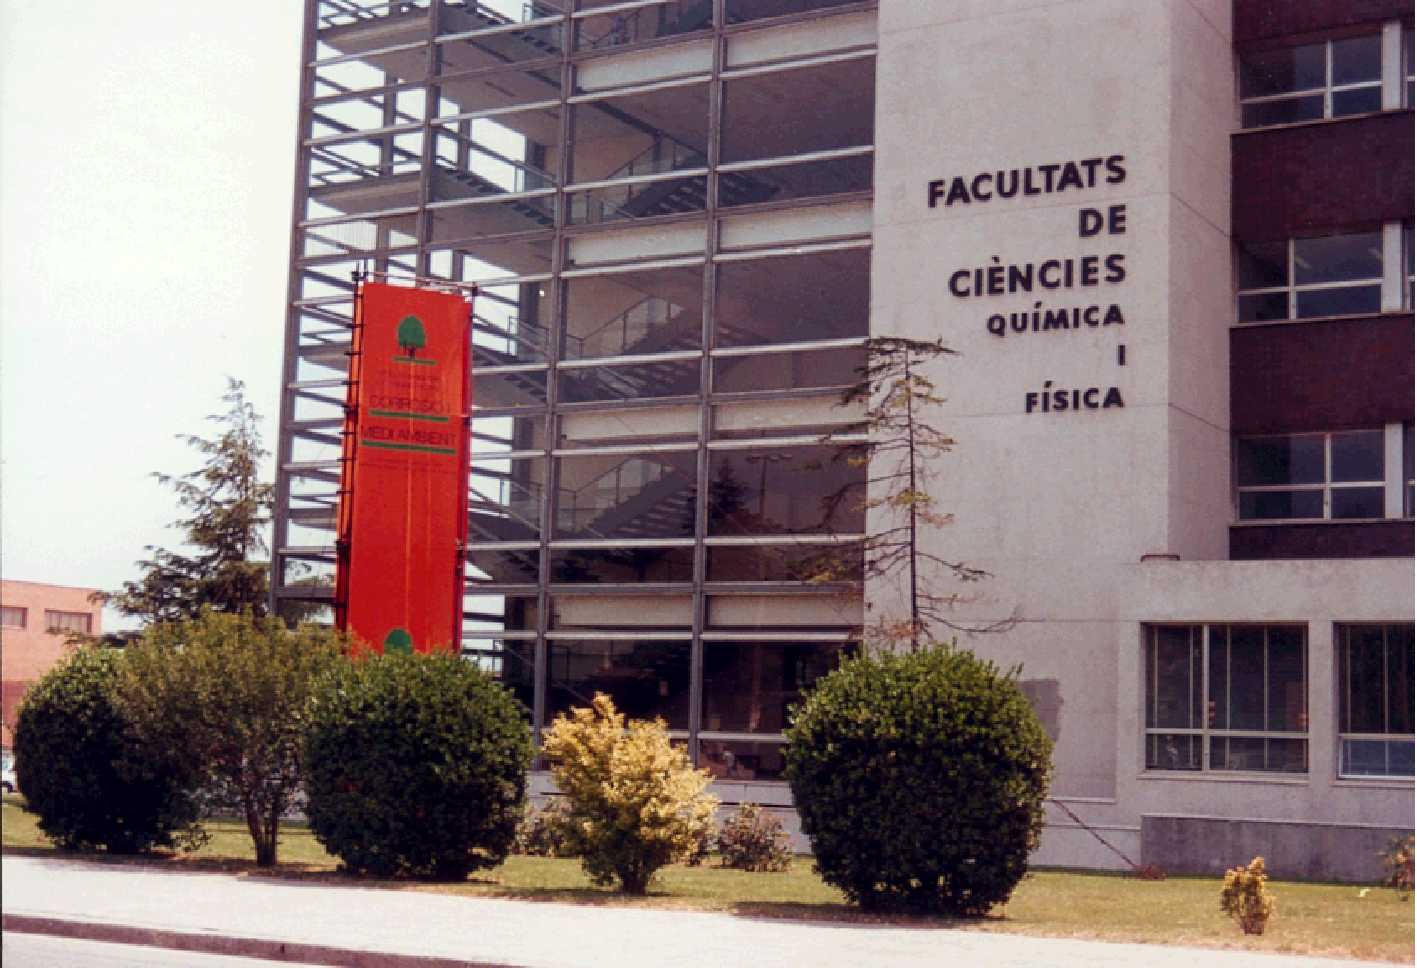 La Facultat al Campus Diagonal